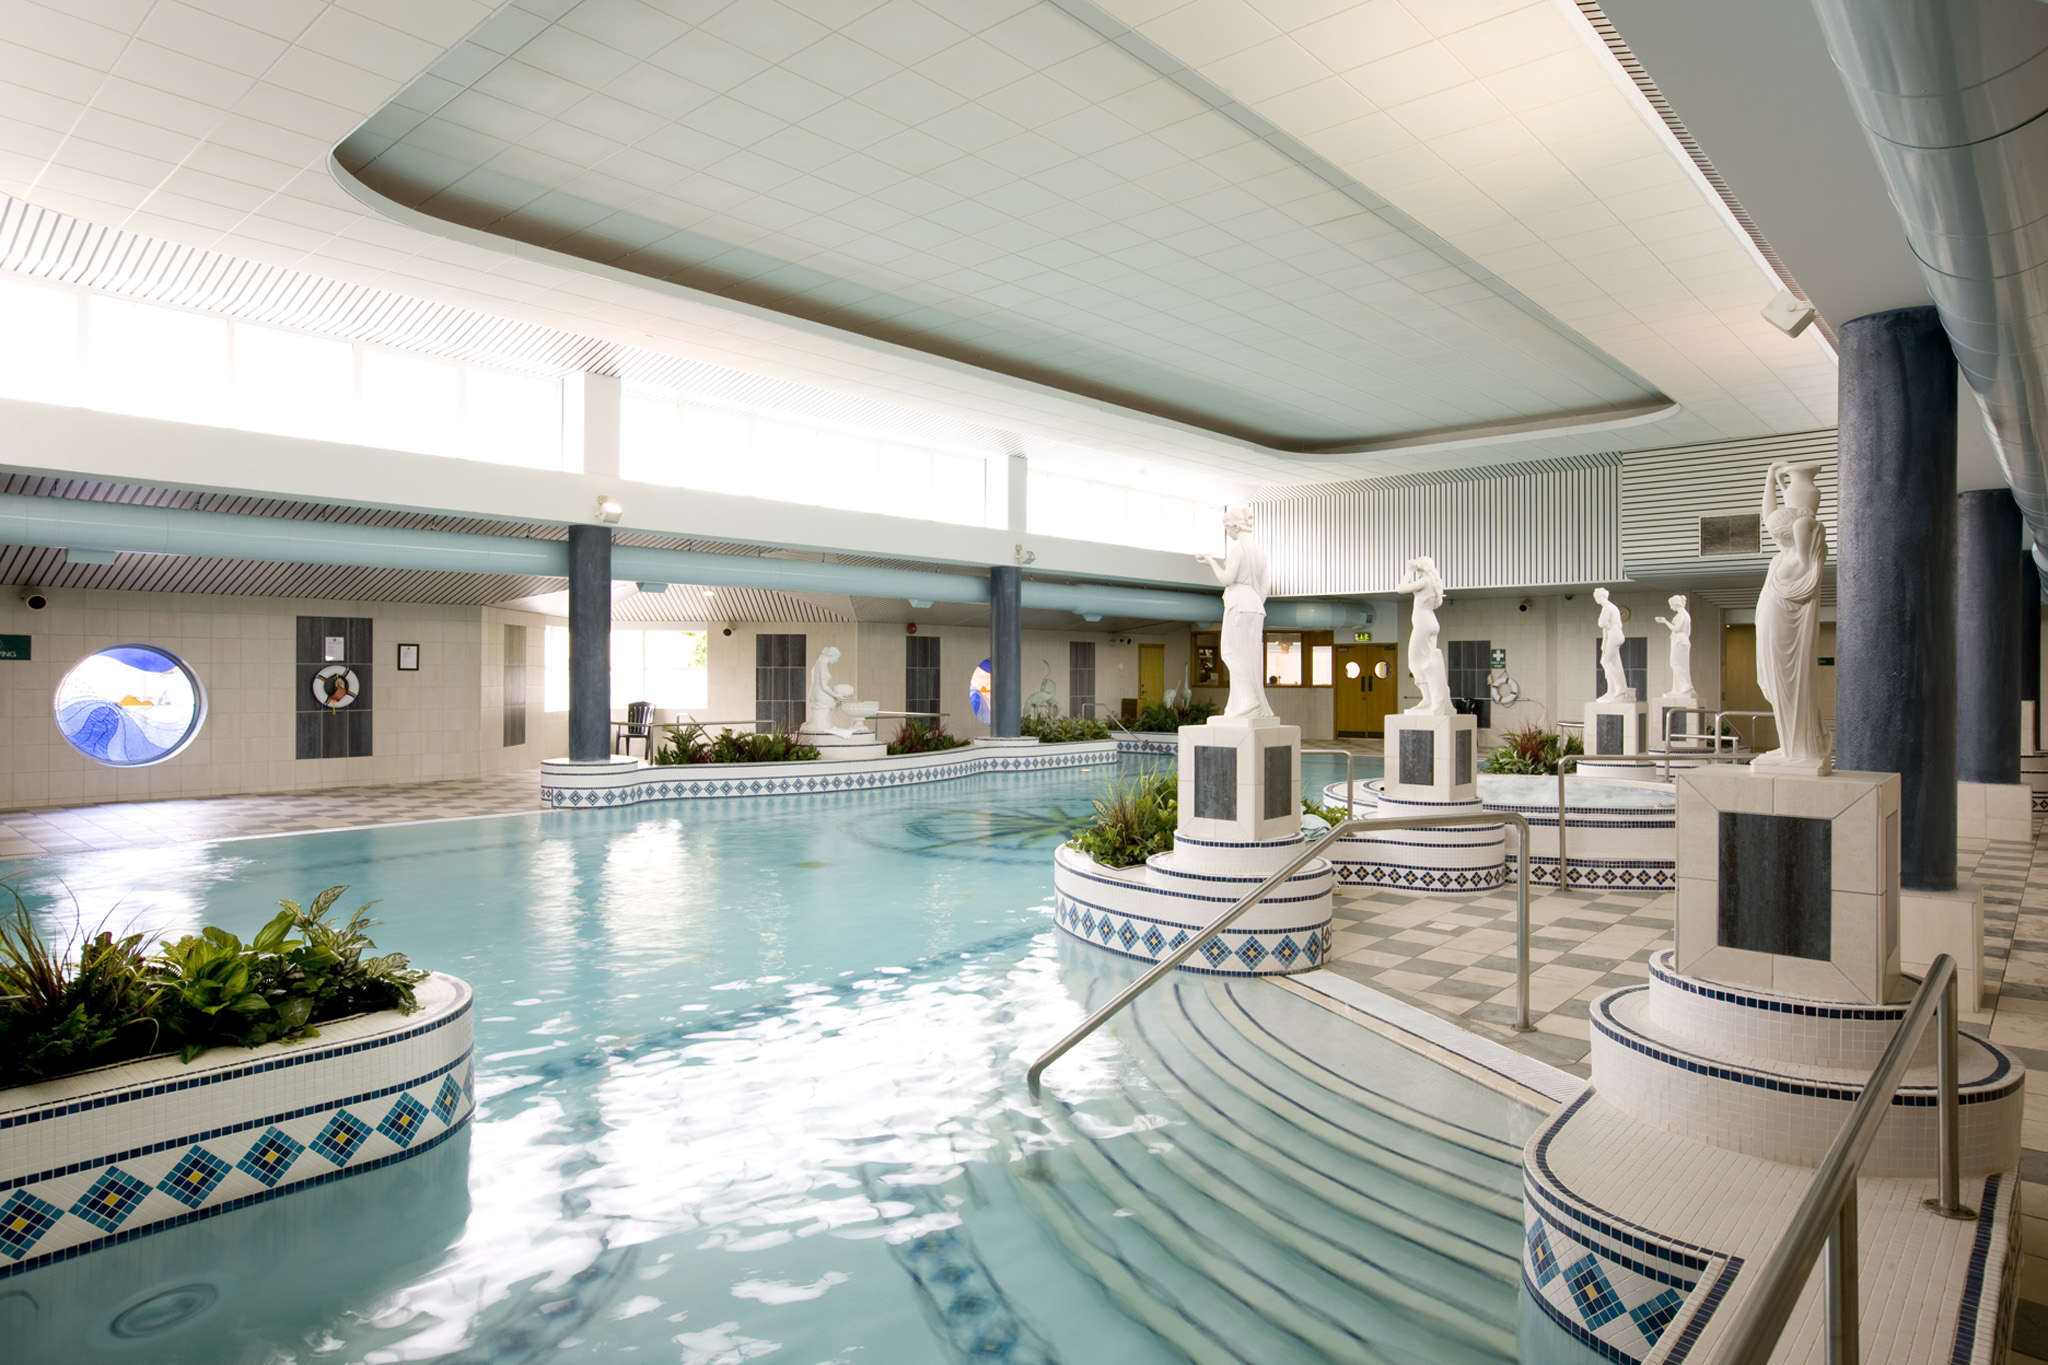 Spacious pool and ornate decorations in the Arena Health and Leisure center